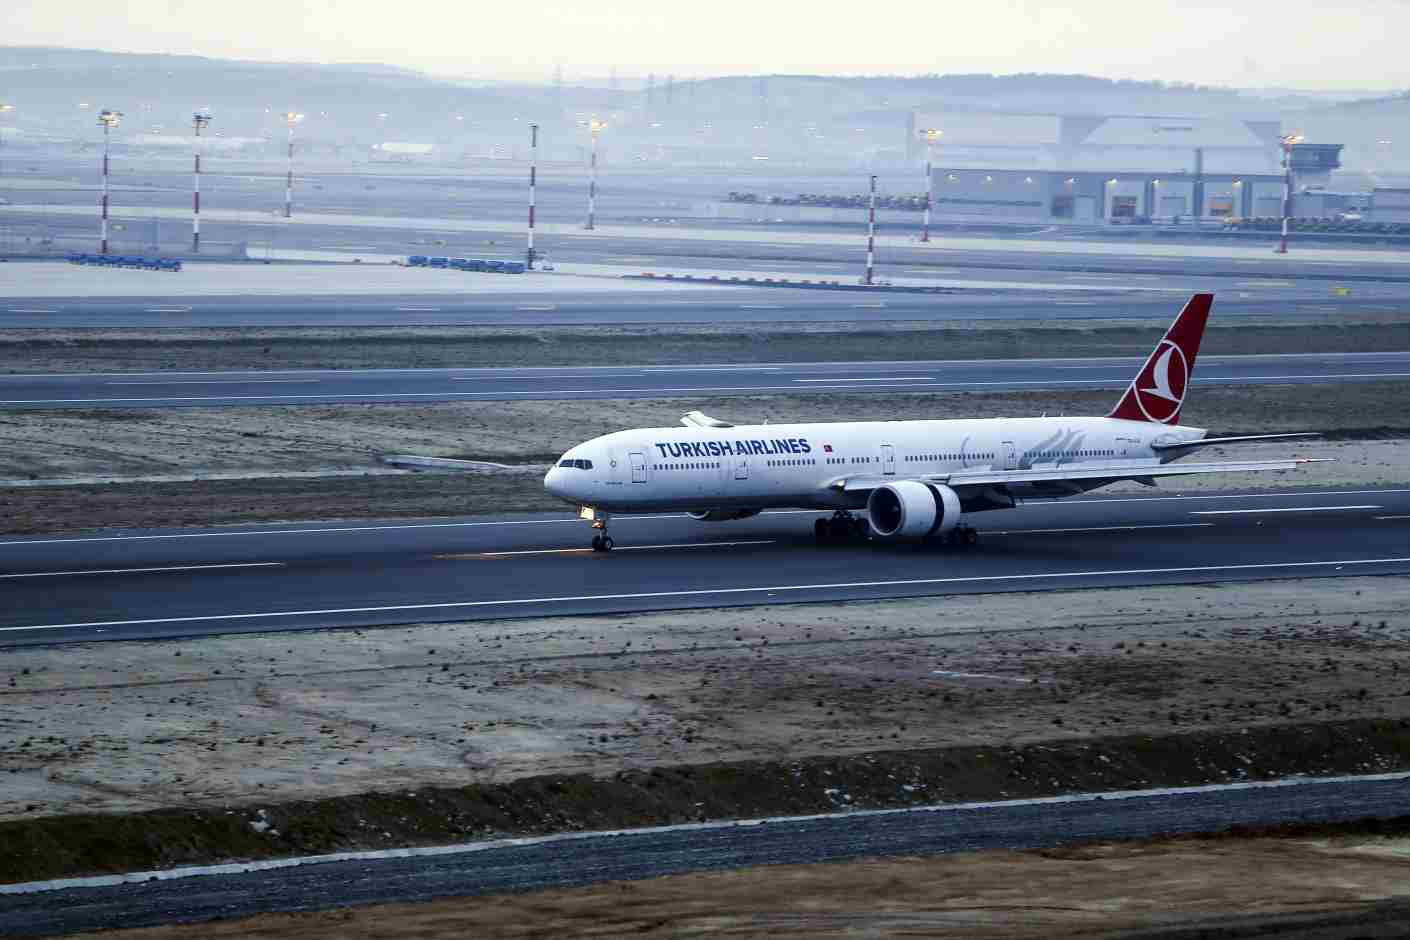 ISTANBUL, TURKEY APRIL 05: Turkish Airlines plane, took off from Ataturk Airport without passengers, is seen landing at new Istanbul Airport, on April 05, 2019 in Istanbul, Turkey. The big switch from Ataturk Airport to the new mega-Istanbul Airport started. Starting on April 5 at 3.00 a.m. local time (0000GMT), the initial moving operation will take a total of 45 hours. Istanbul Airport, the world